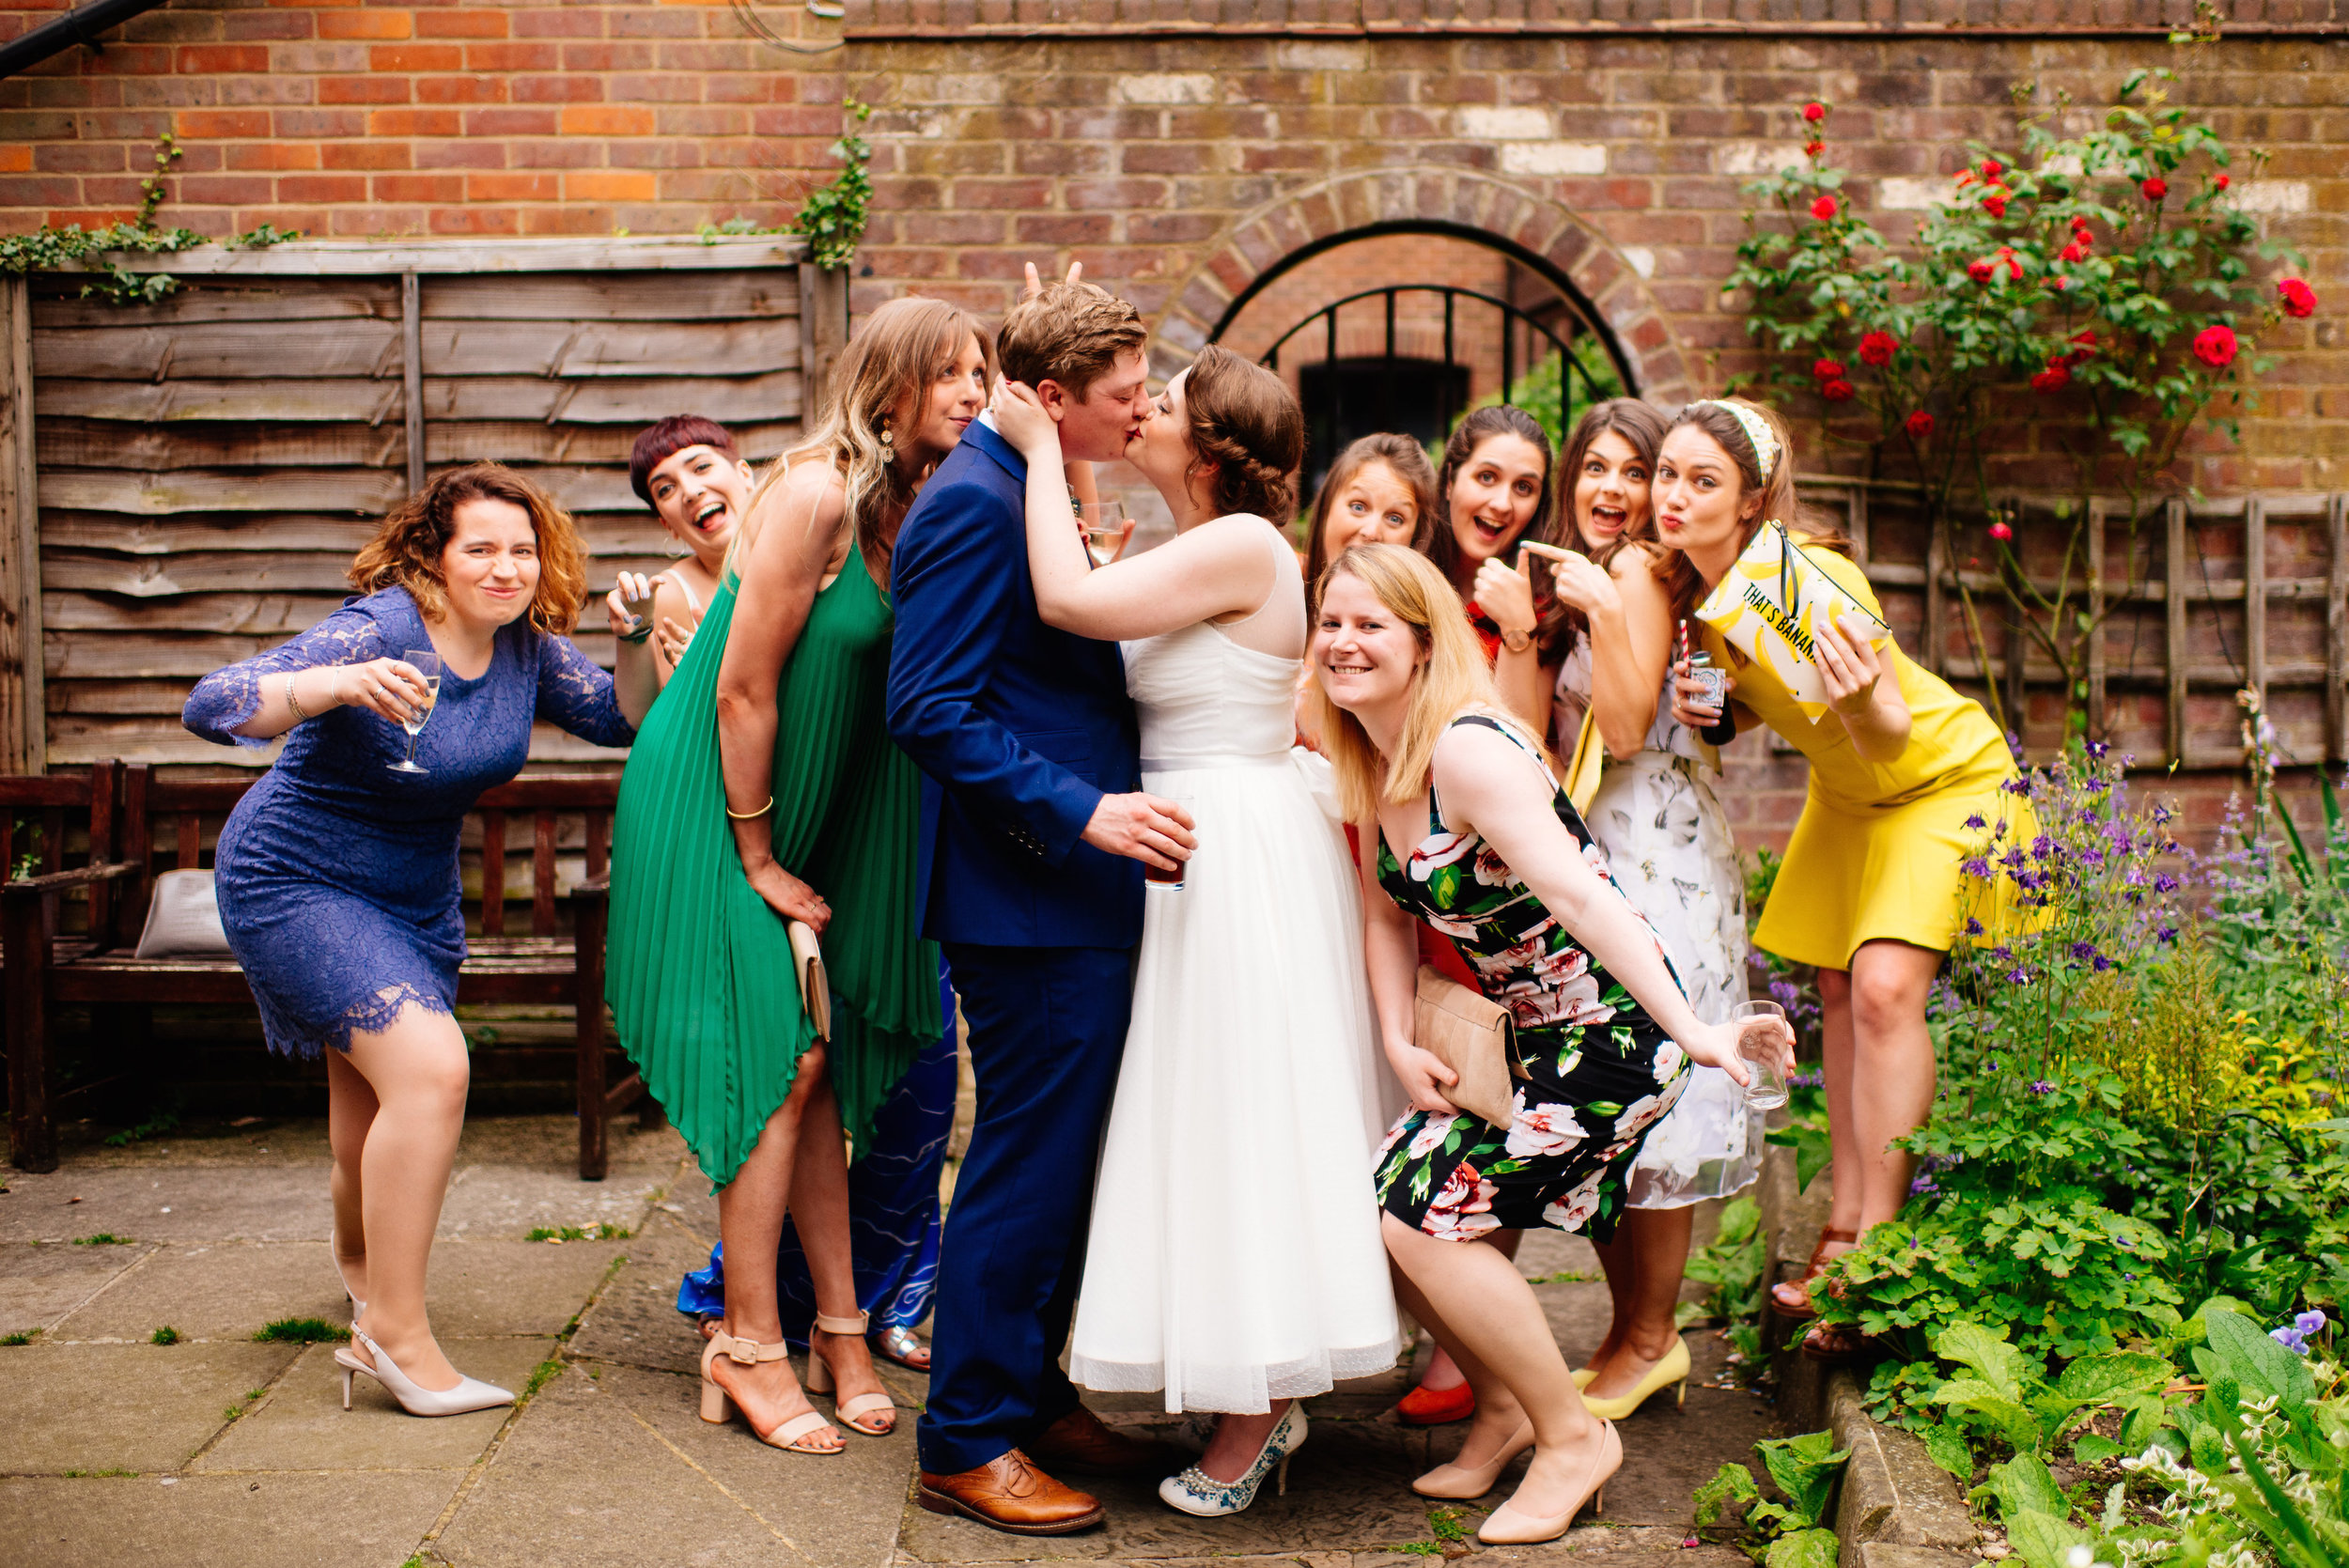 158 Emily + Daniel | Berkhamsted Towhall Wedding London Wedding Photographer Bride Groom Watford.jpg